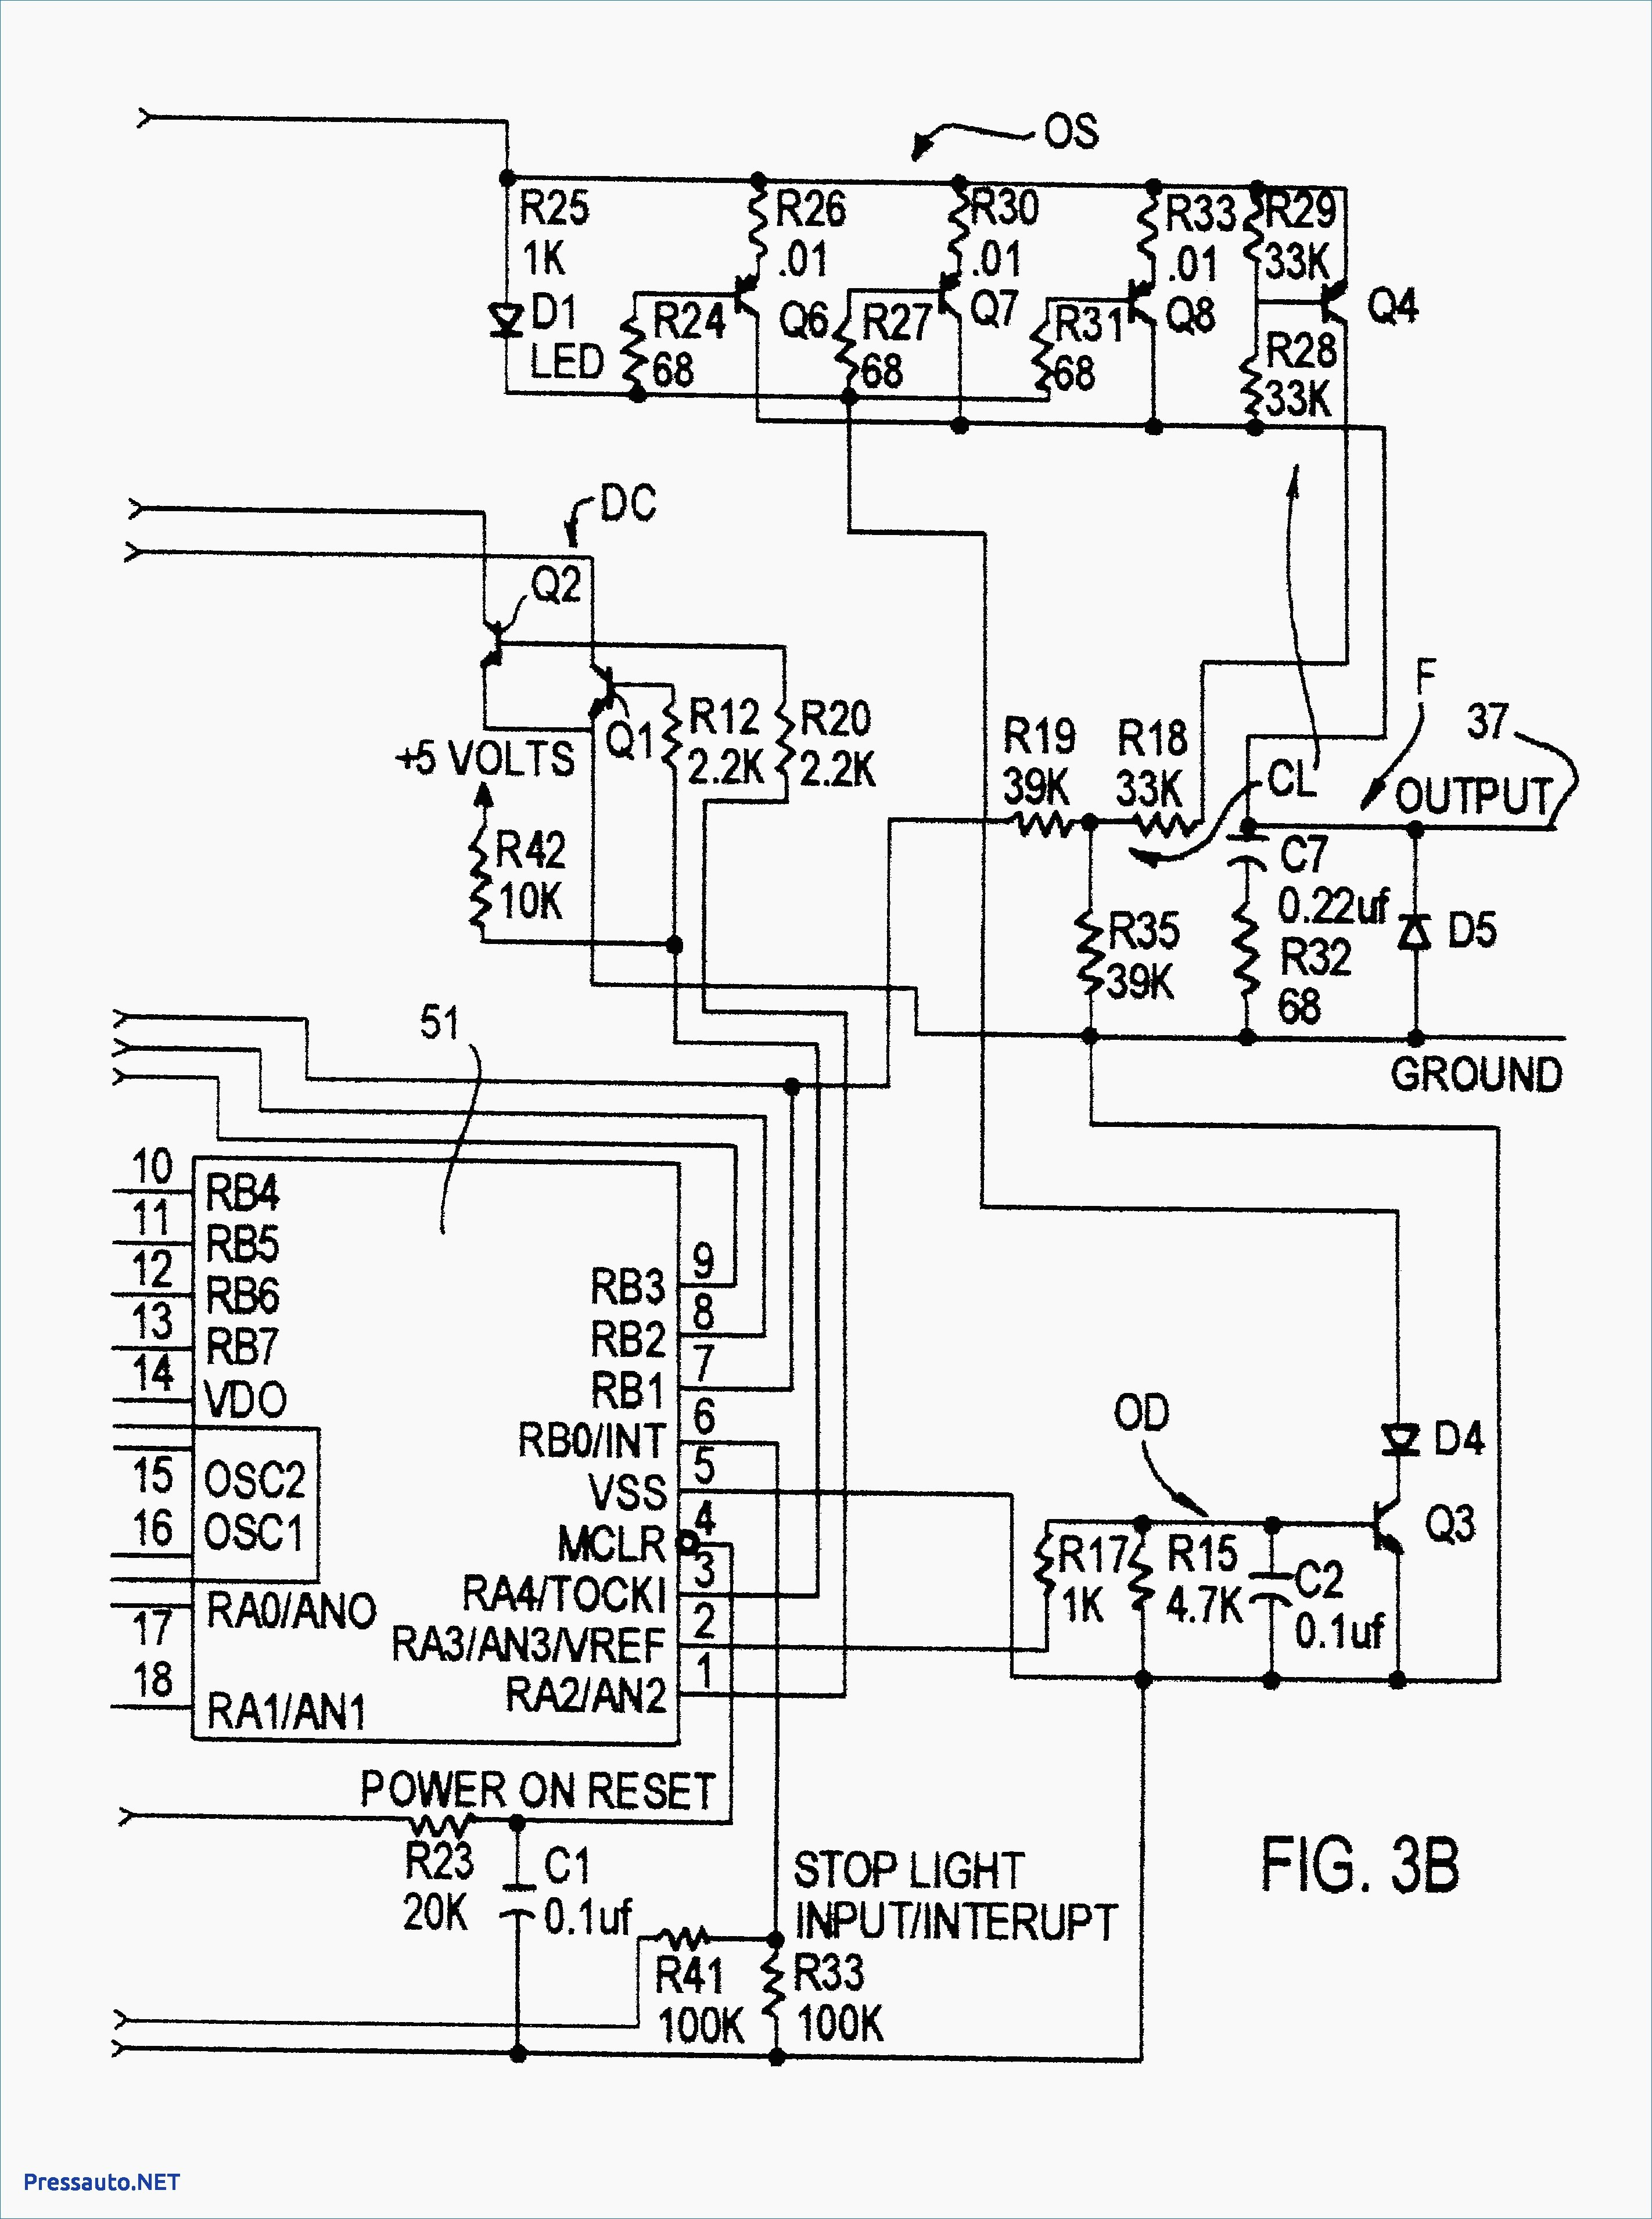 Electric trailer brakes wiring diagram new wiring diagram image wiring diagram electric trailer brake control pressauto net at controller asfbconference2016 Choice Image